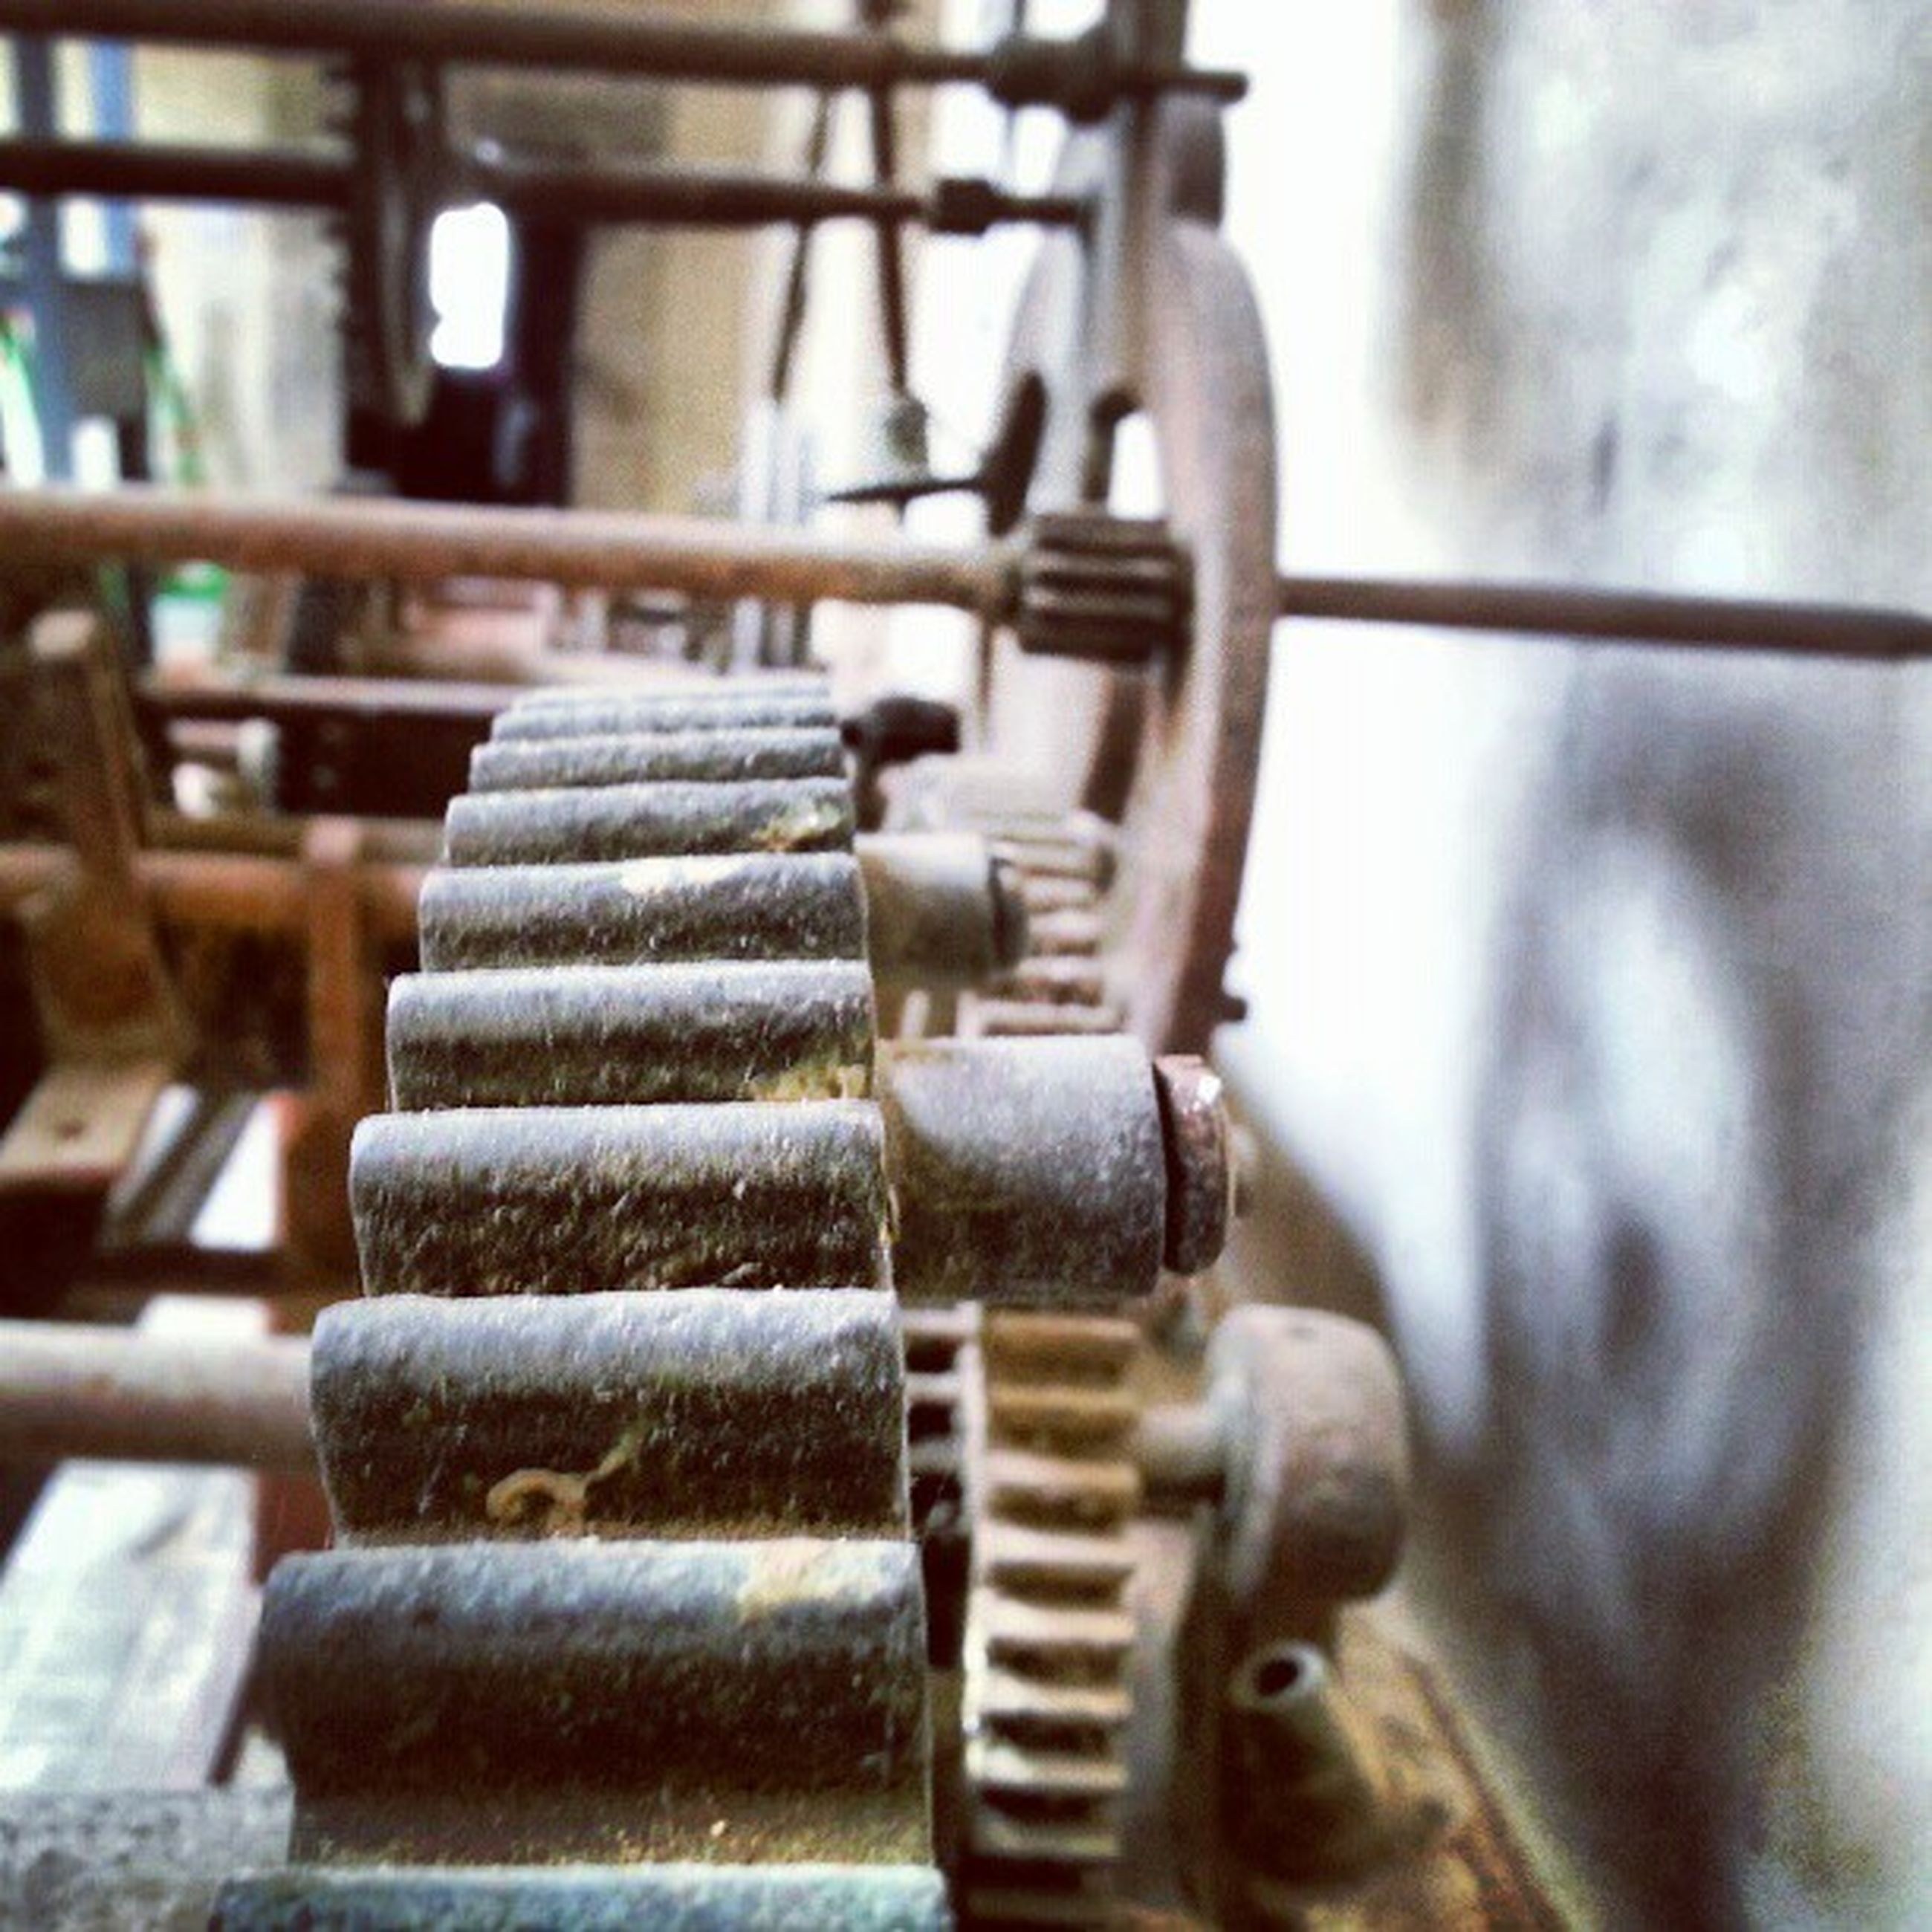 focus on foreground, metal, close-up, indoors, selective focus, metallic, musical instrument, music, old, rusty, machinery, old-fashioned, equipment, machine part, in a row, still life, part of, industry, no people, wood - material